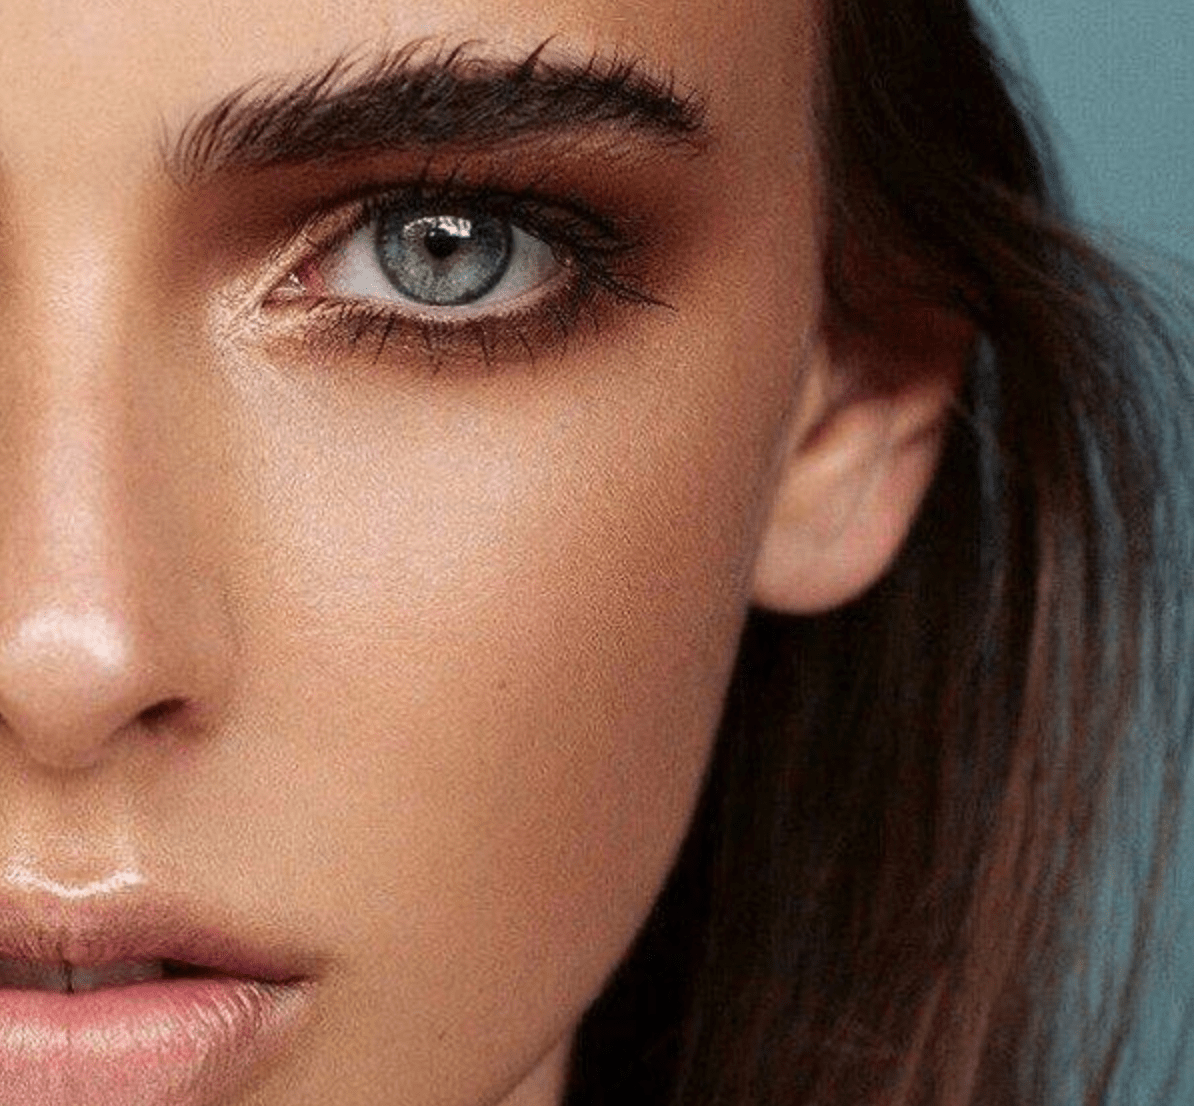 woman with bushy eyebrows, close up.